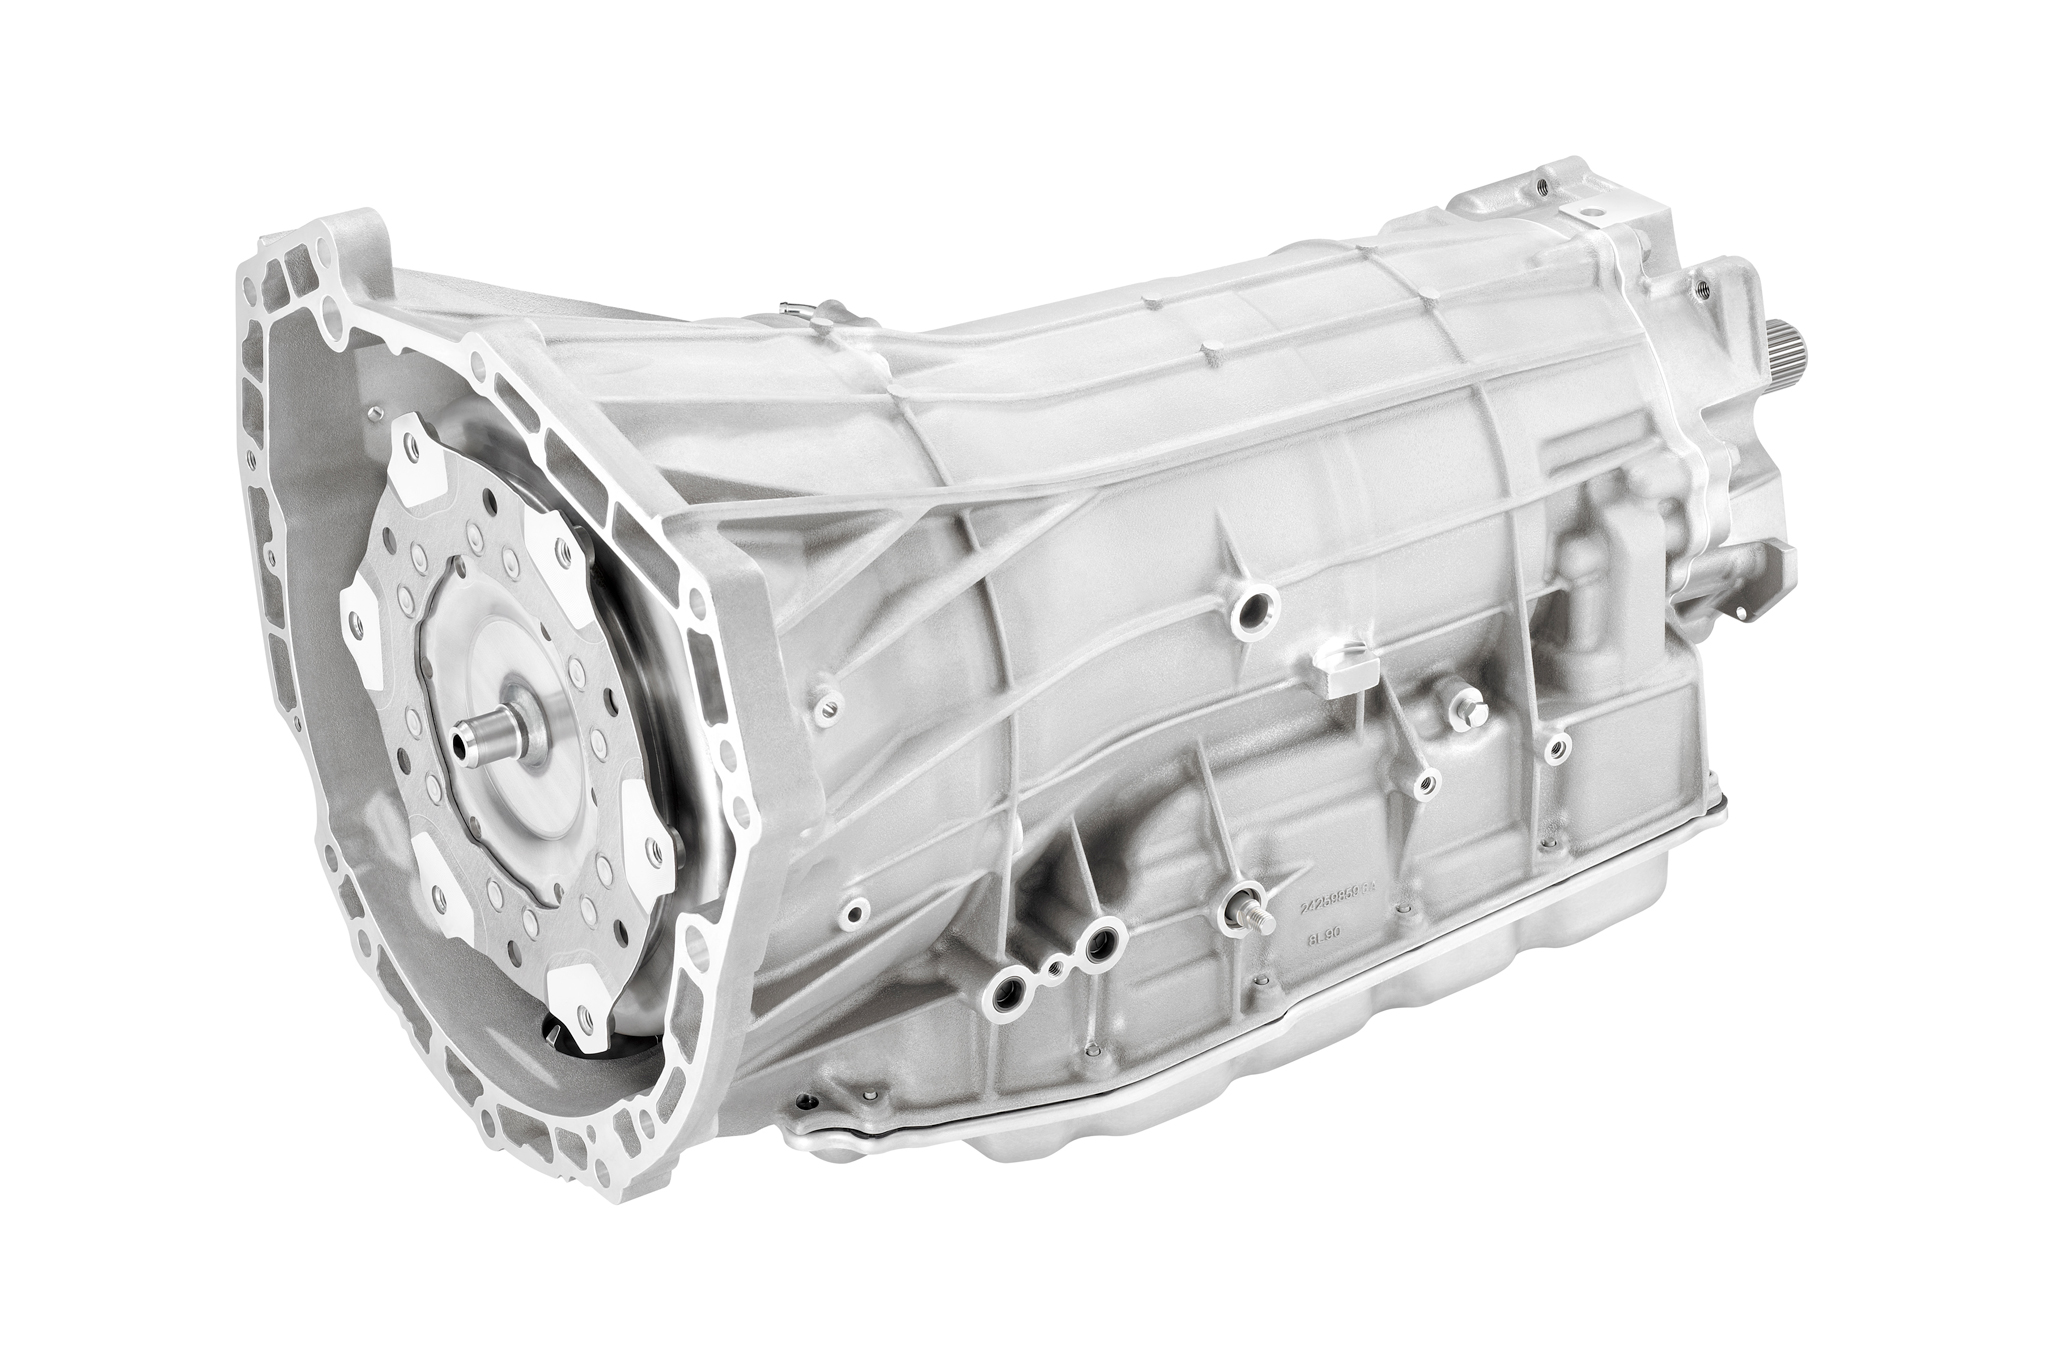 2016 Cadillac CT6 Powertrain Detailed - MotorTrend